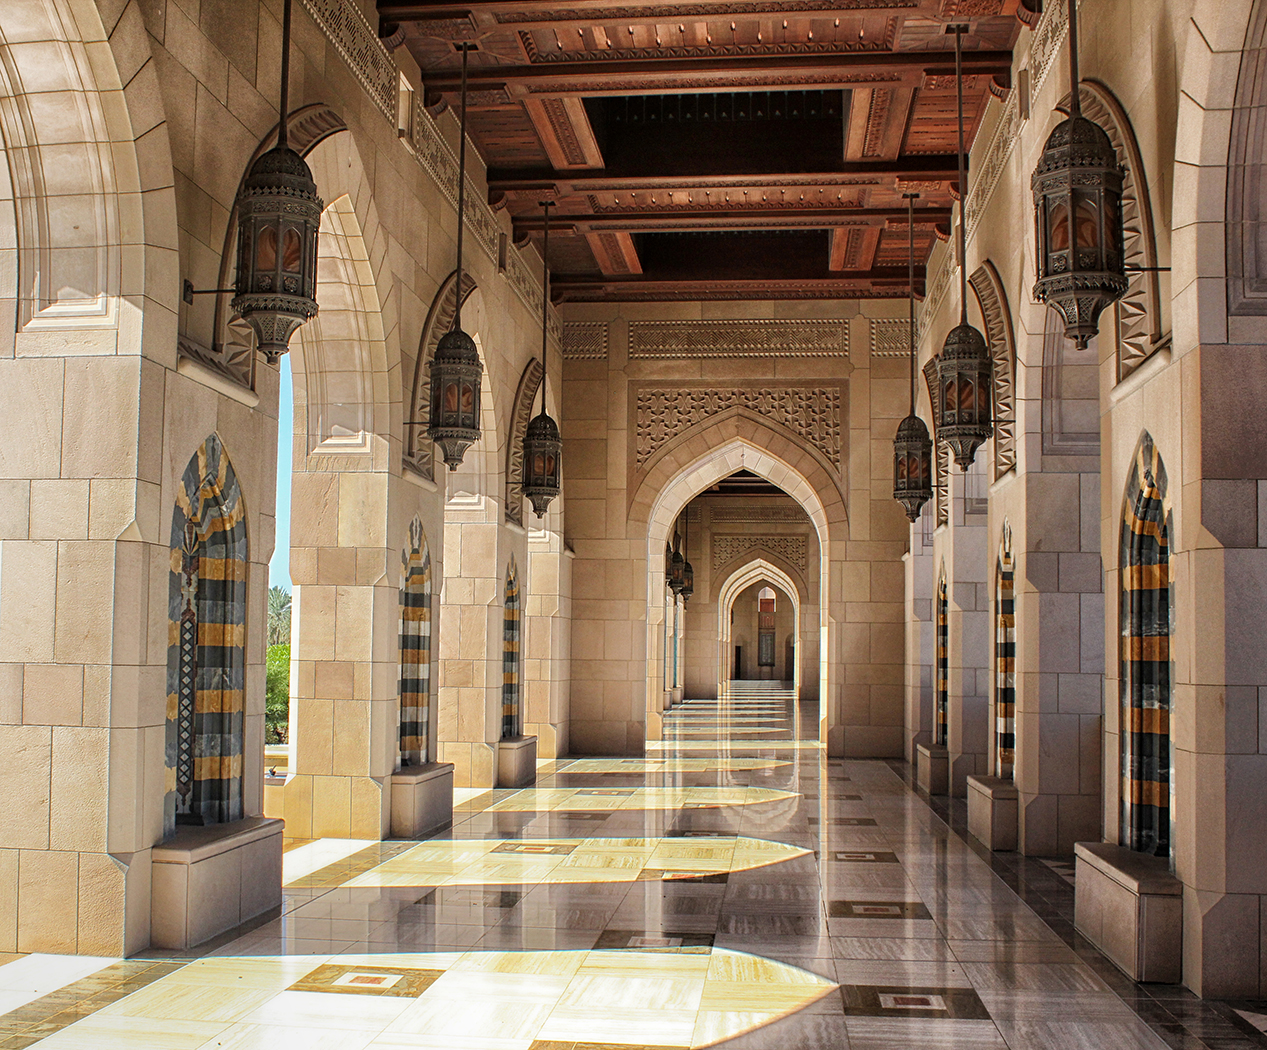 'Grand Mosque Muscat' by Linda Oliver